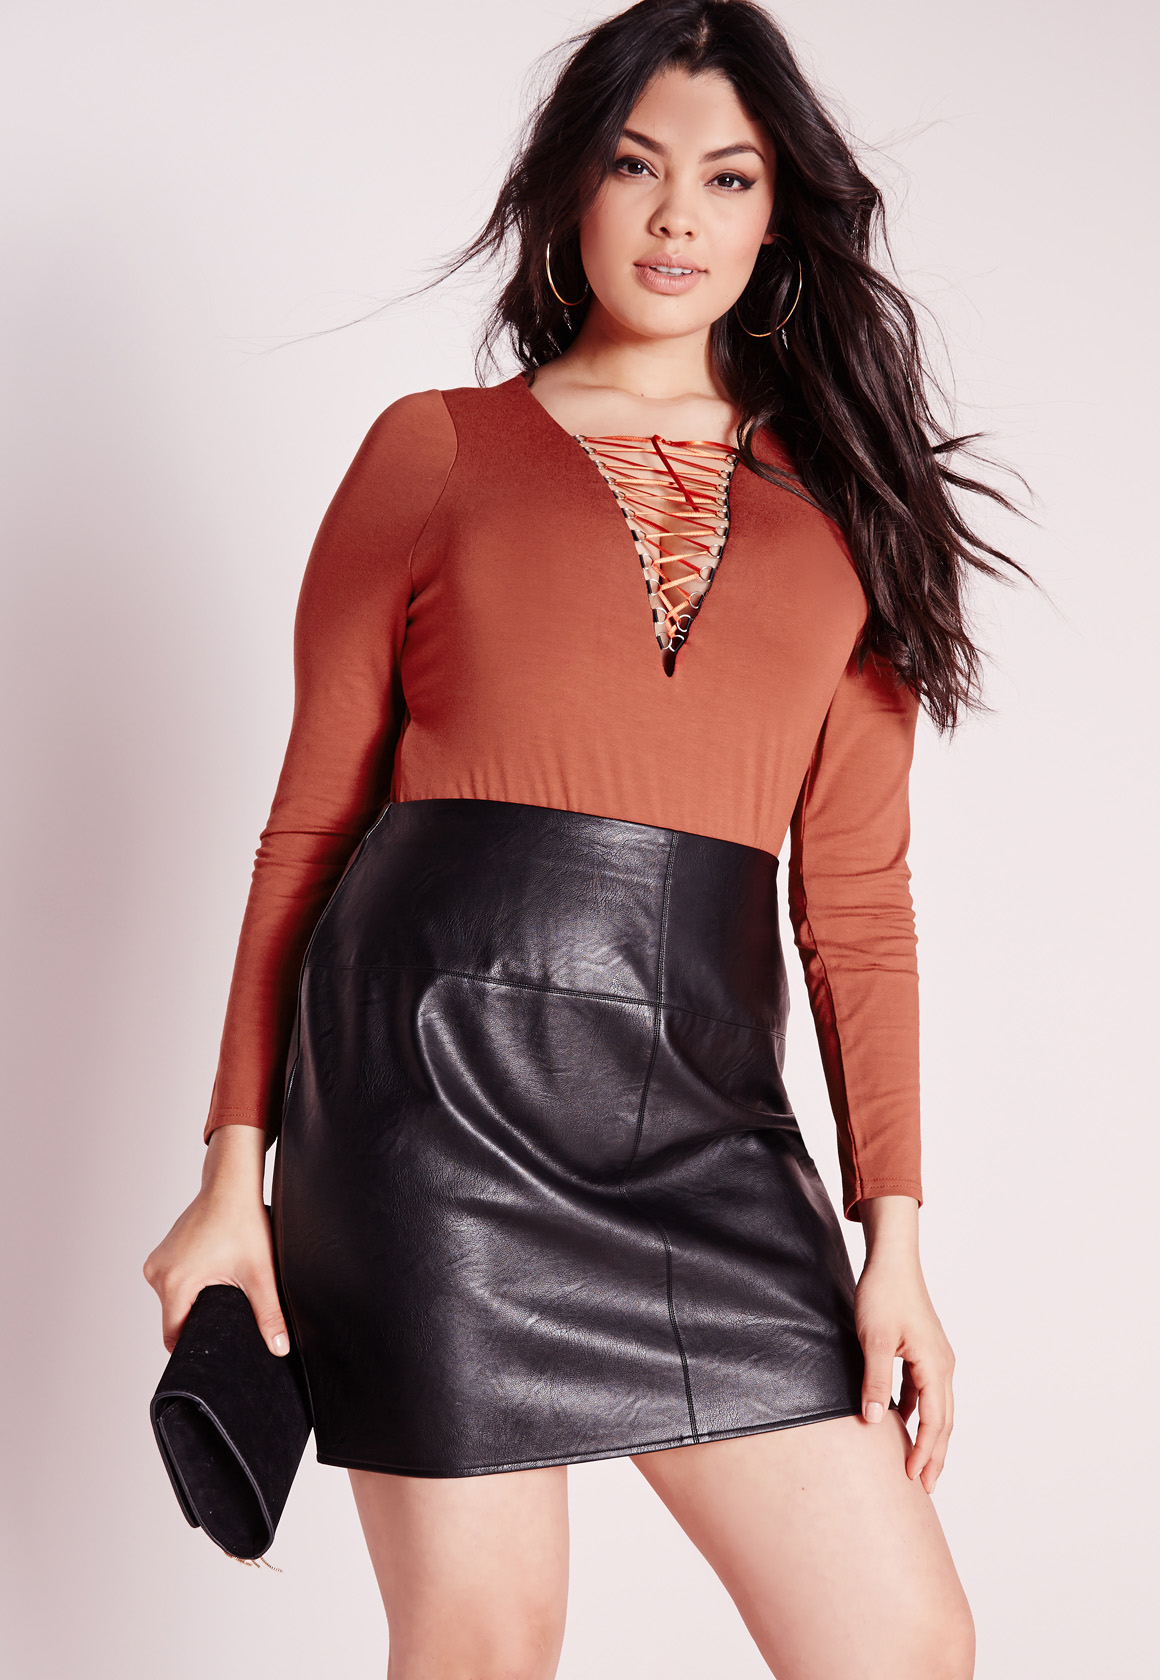 Lyst - Missguided Plus Size Lace Up Bodysuit Rust in Brown